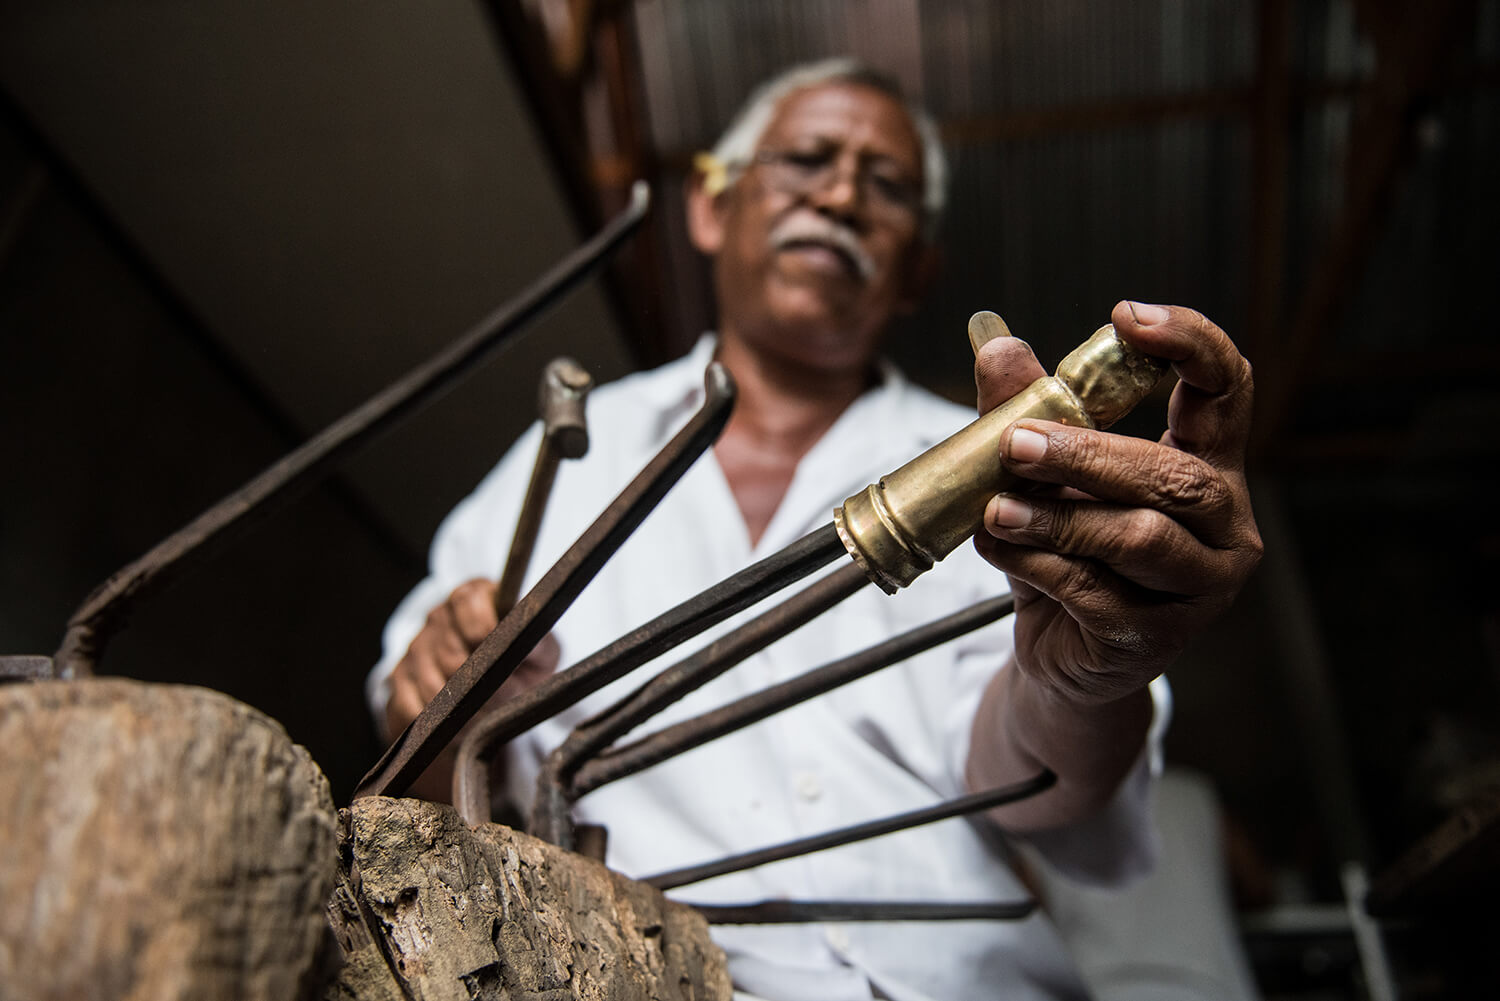 In the initial stage, using traditional tools for  repoussé metalwork, he begins to shape a figurine handle.